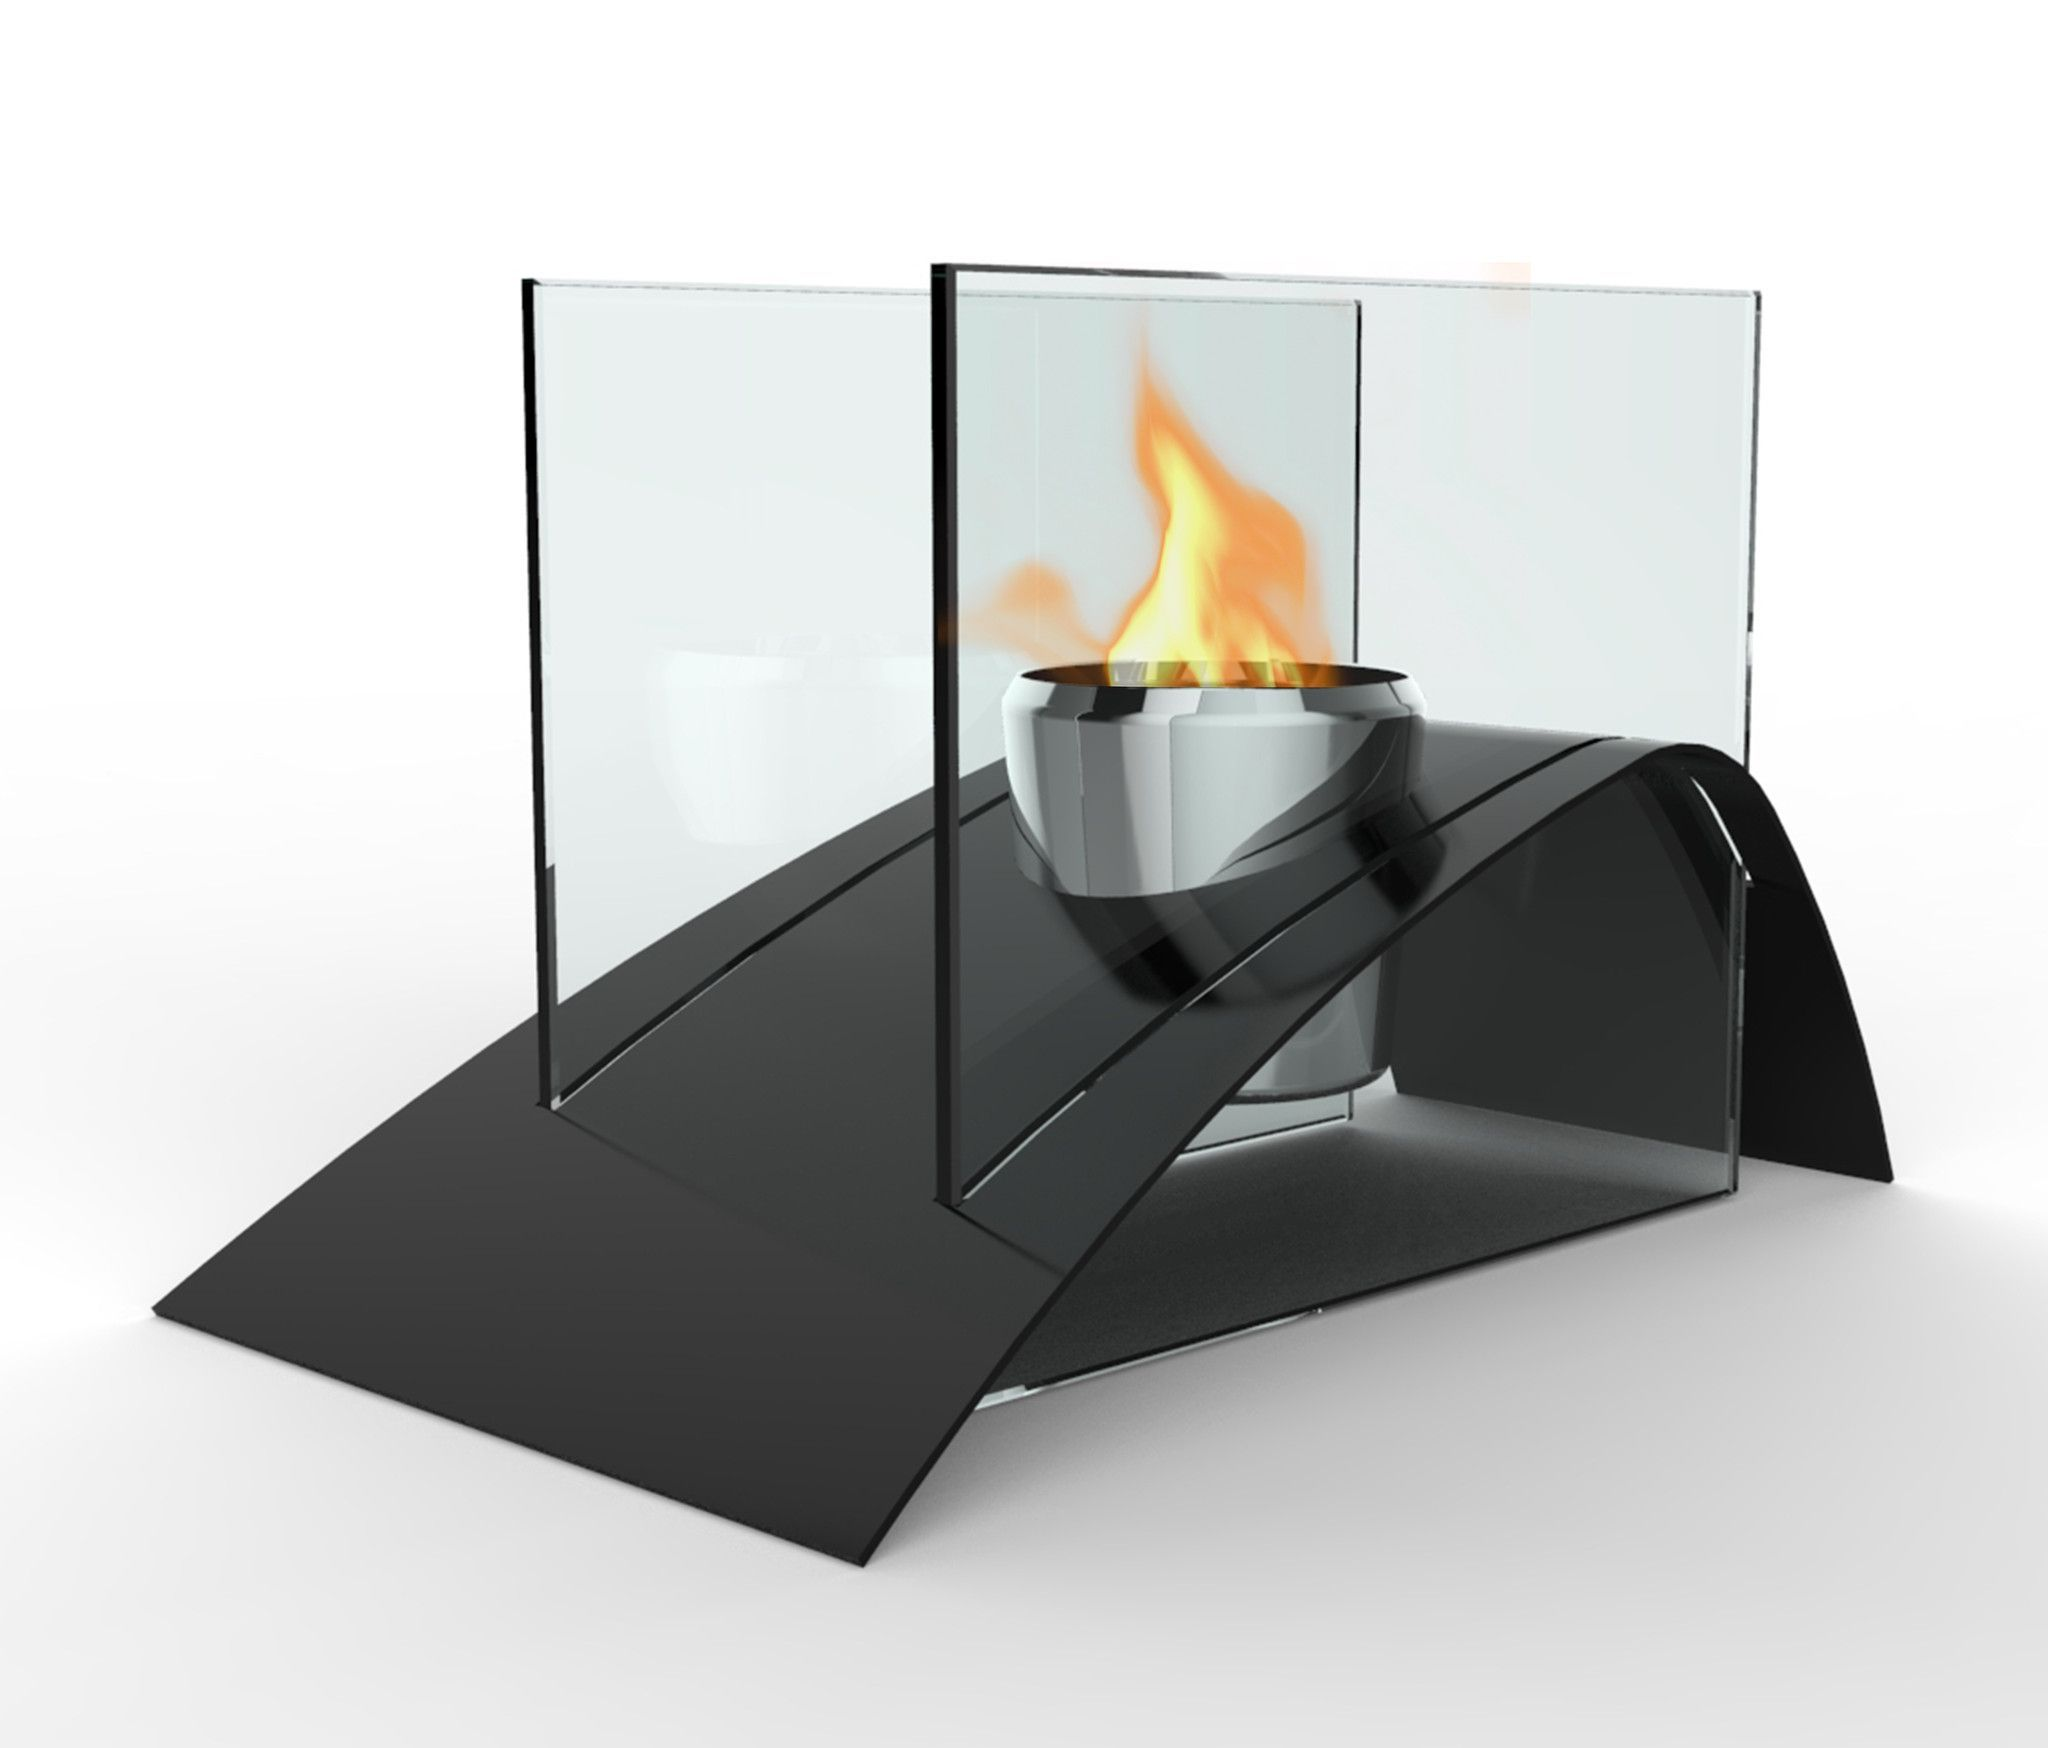 7054fba1adeeb2e21a2eb8ae321114eb Top Result 49 Luxury Outdoor Tabletop Fireplace Photos 2018 Xzw1